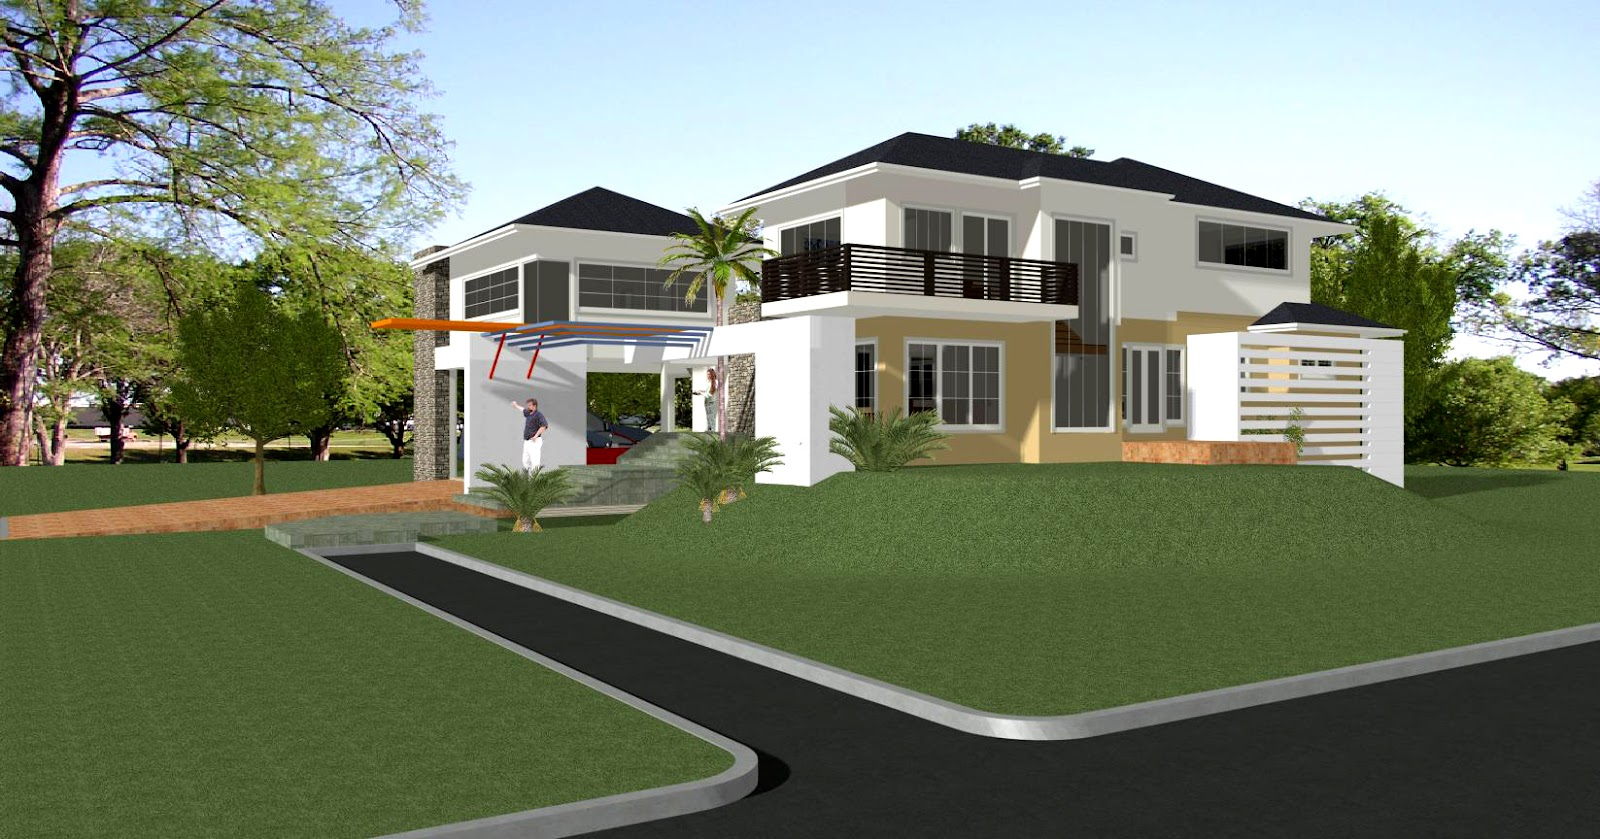 House designs in the philippines in iloilo by erecre group for Home construction plans